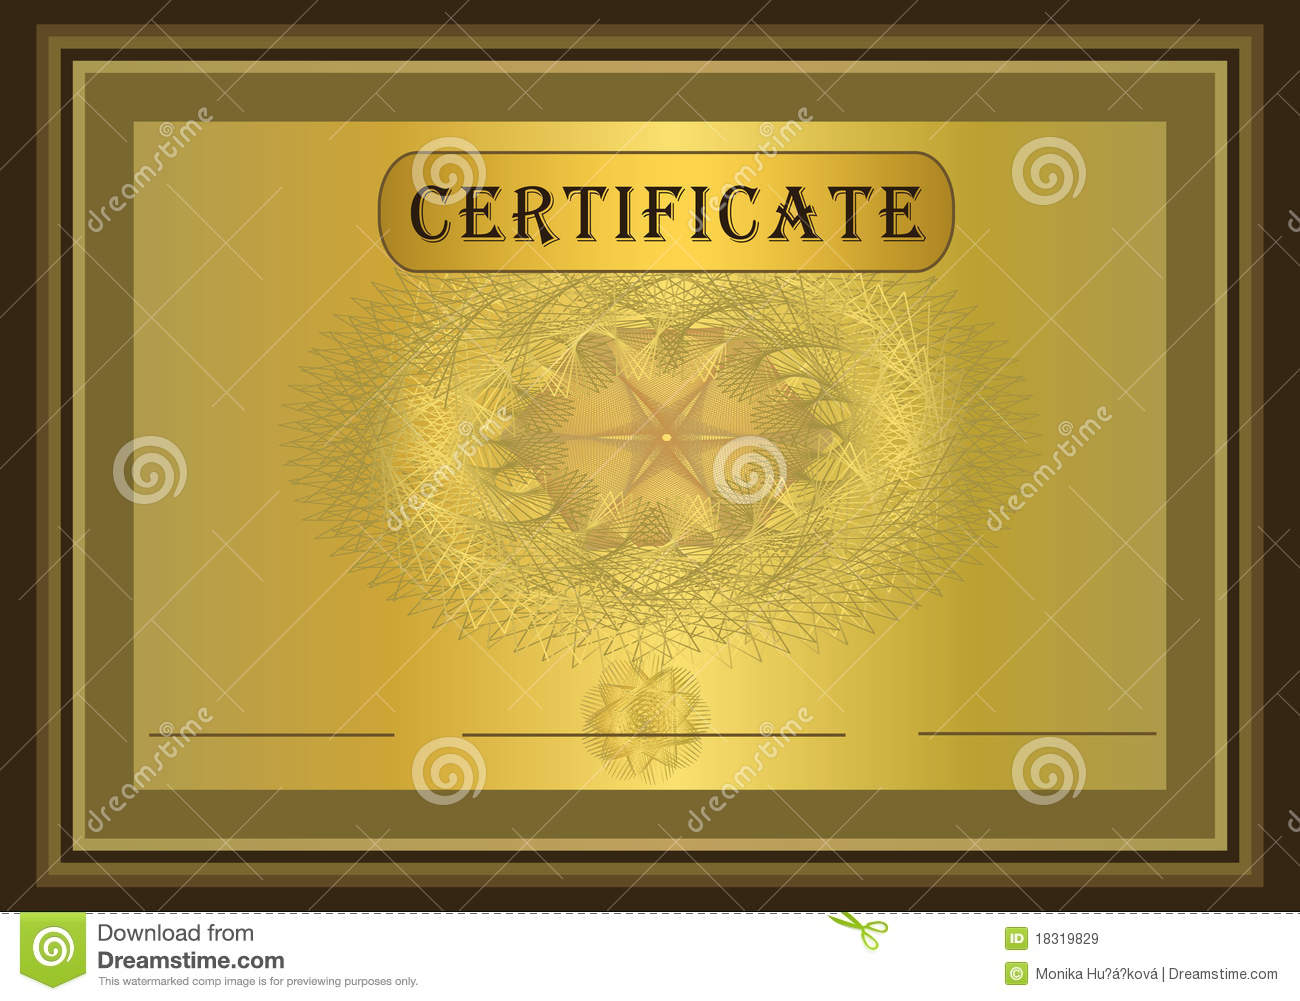 Certificate Gold Brown Royalty Free Stock Images - Image ...